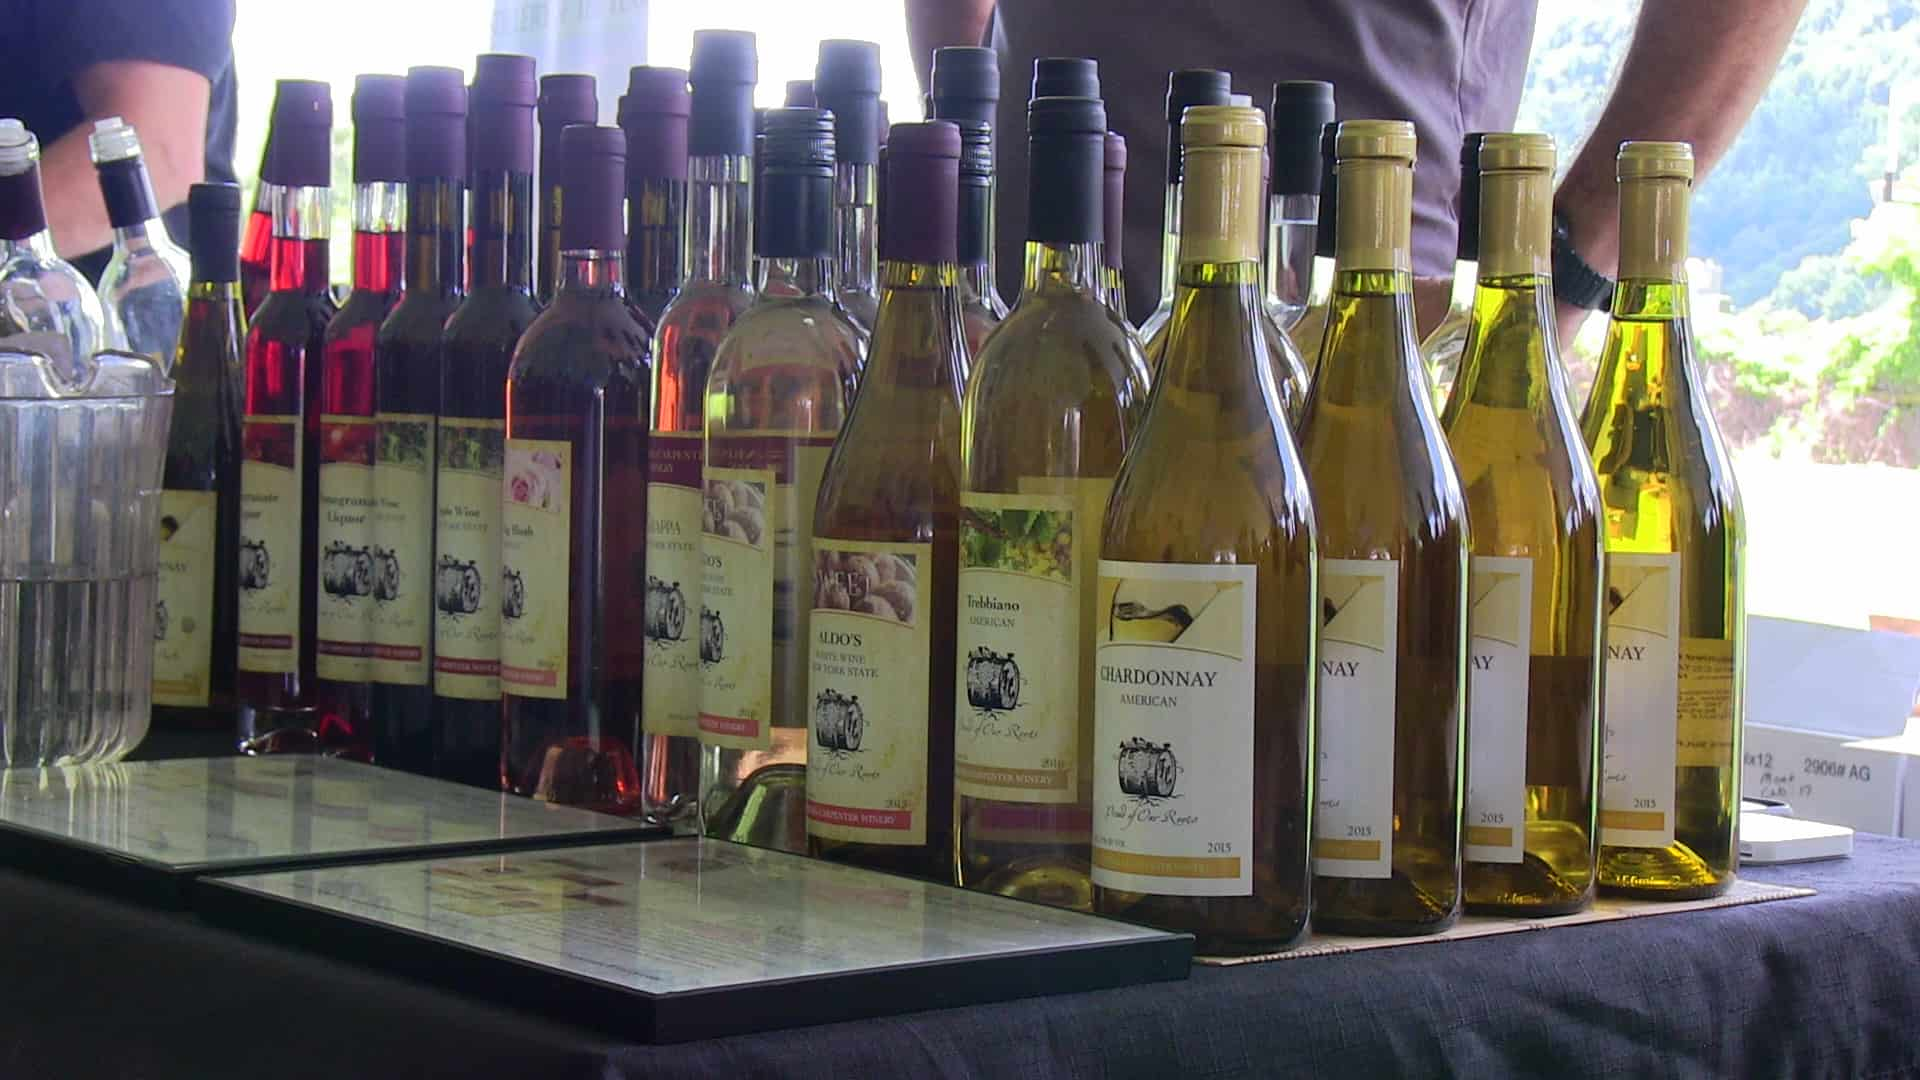 TICKETS ON SALE NOW FOR THE 9TH ANNUAL  PUTNAM COUNTY WINE & FOOD FEST